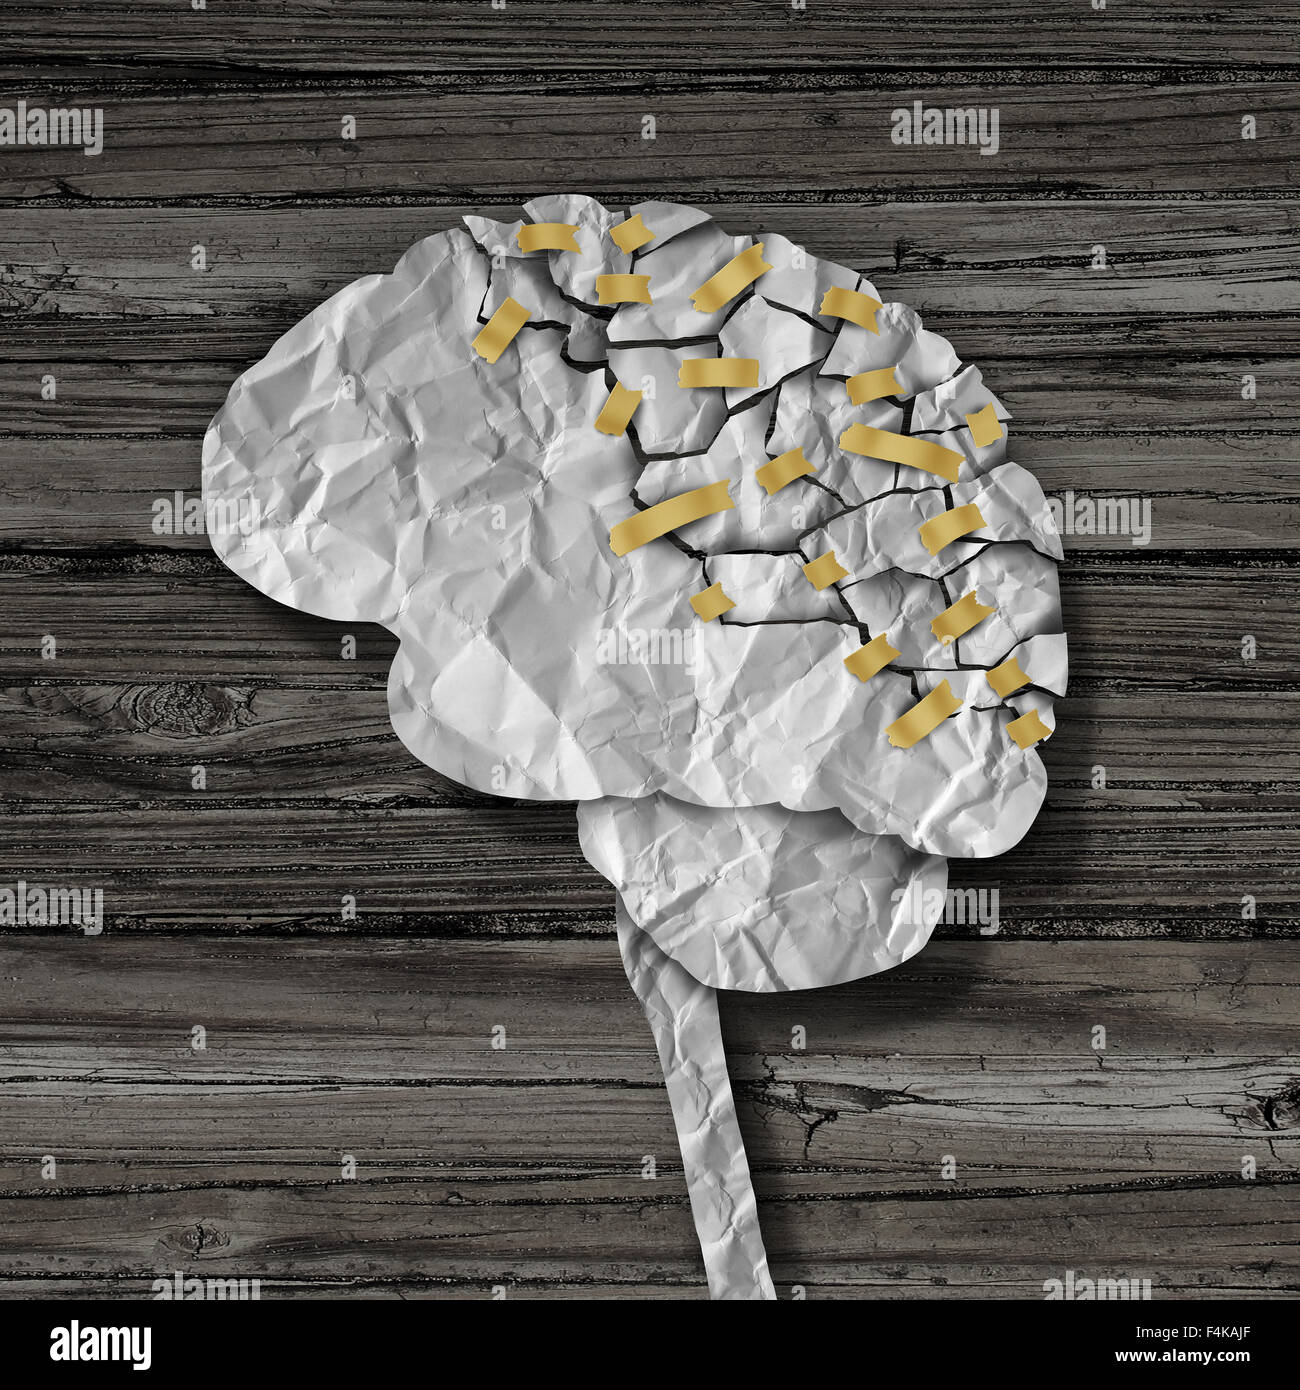 Brain rehabilitation and mental health therapy concept as a crumpled broken paper shaped as the human thinking organ - Stock Image